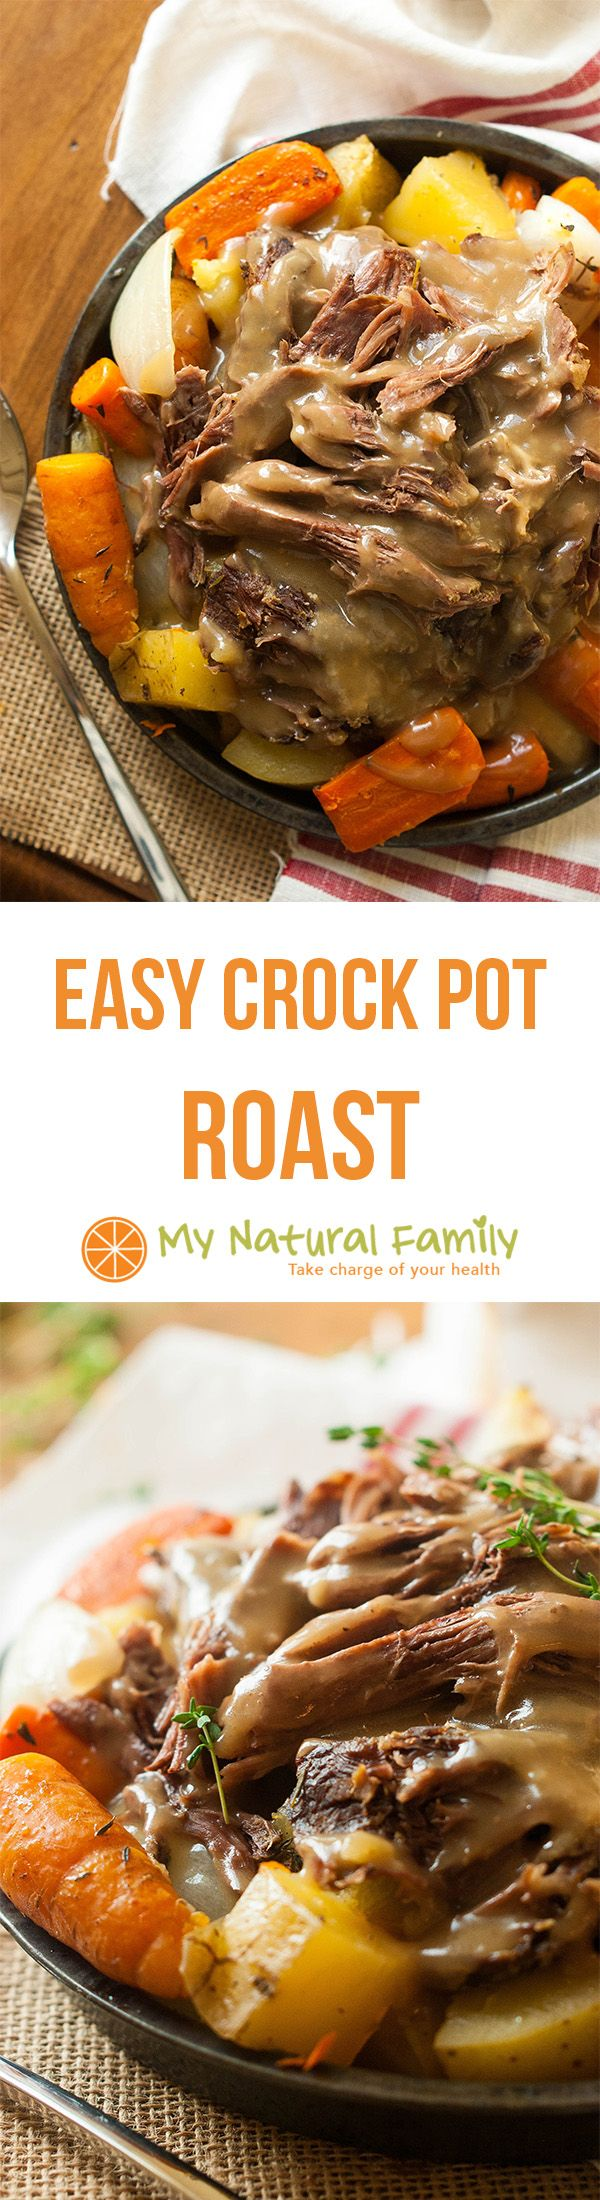 Easy Pot Roast Crock Pot Recipe {Clean Eating, Gluten Free} - throw the ingredients in your crock pot and forget about it until it's time to make the gravy from the drippings then enjoy! Make it Paleo by subbing parsnips for the white potatoes and arrowroot starch in the gravy.